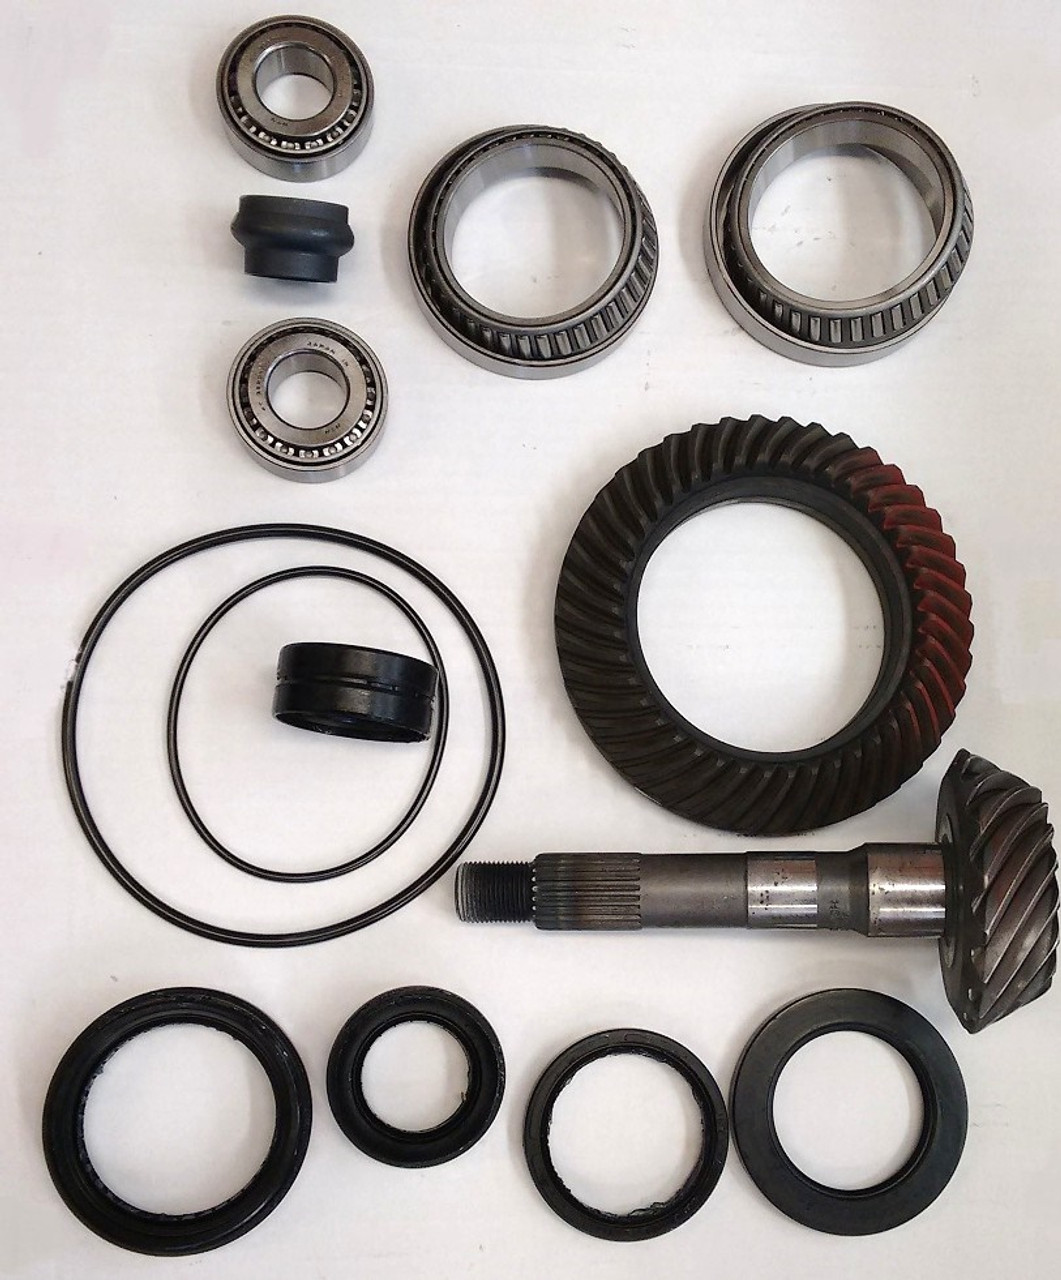 This are the parts which are replaced in the transfer case.